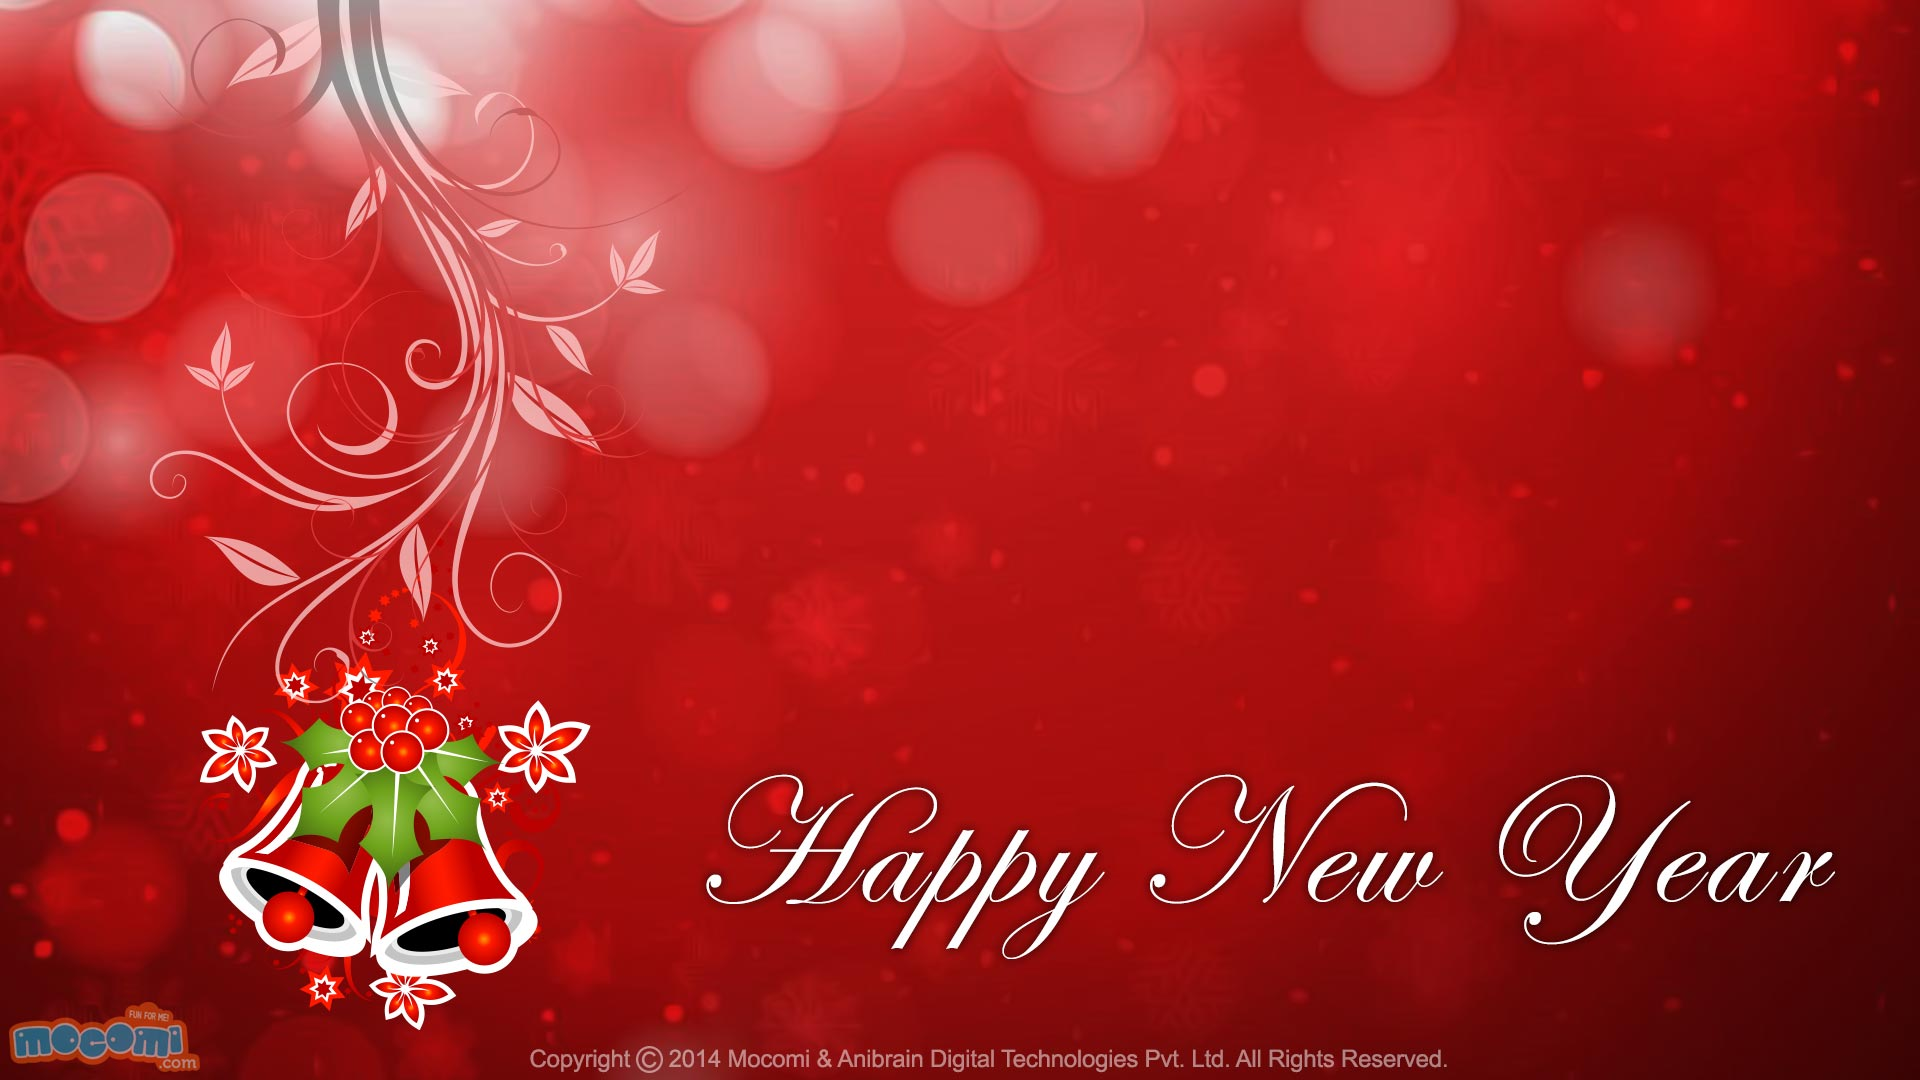 Happy New Year Wallpaper- 13. «